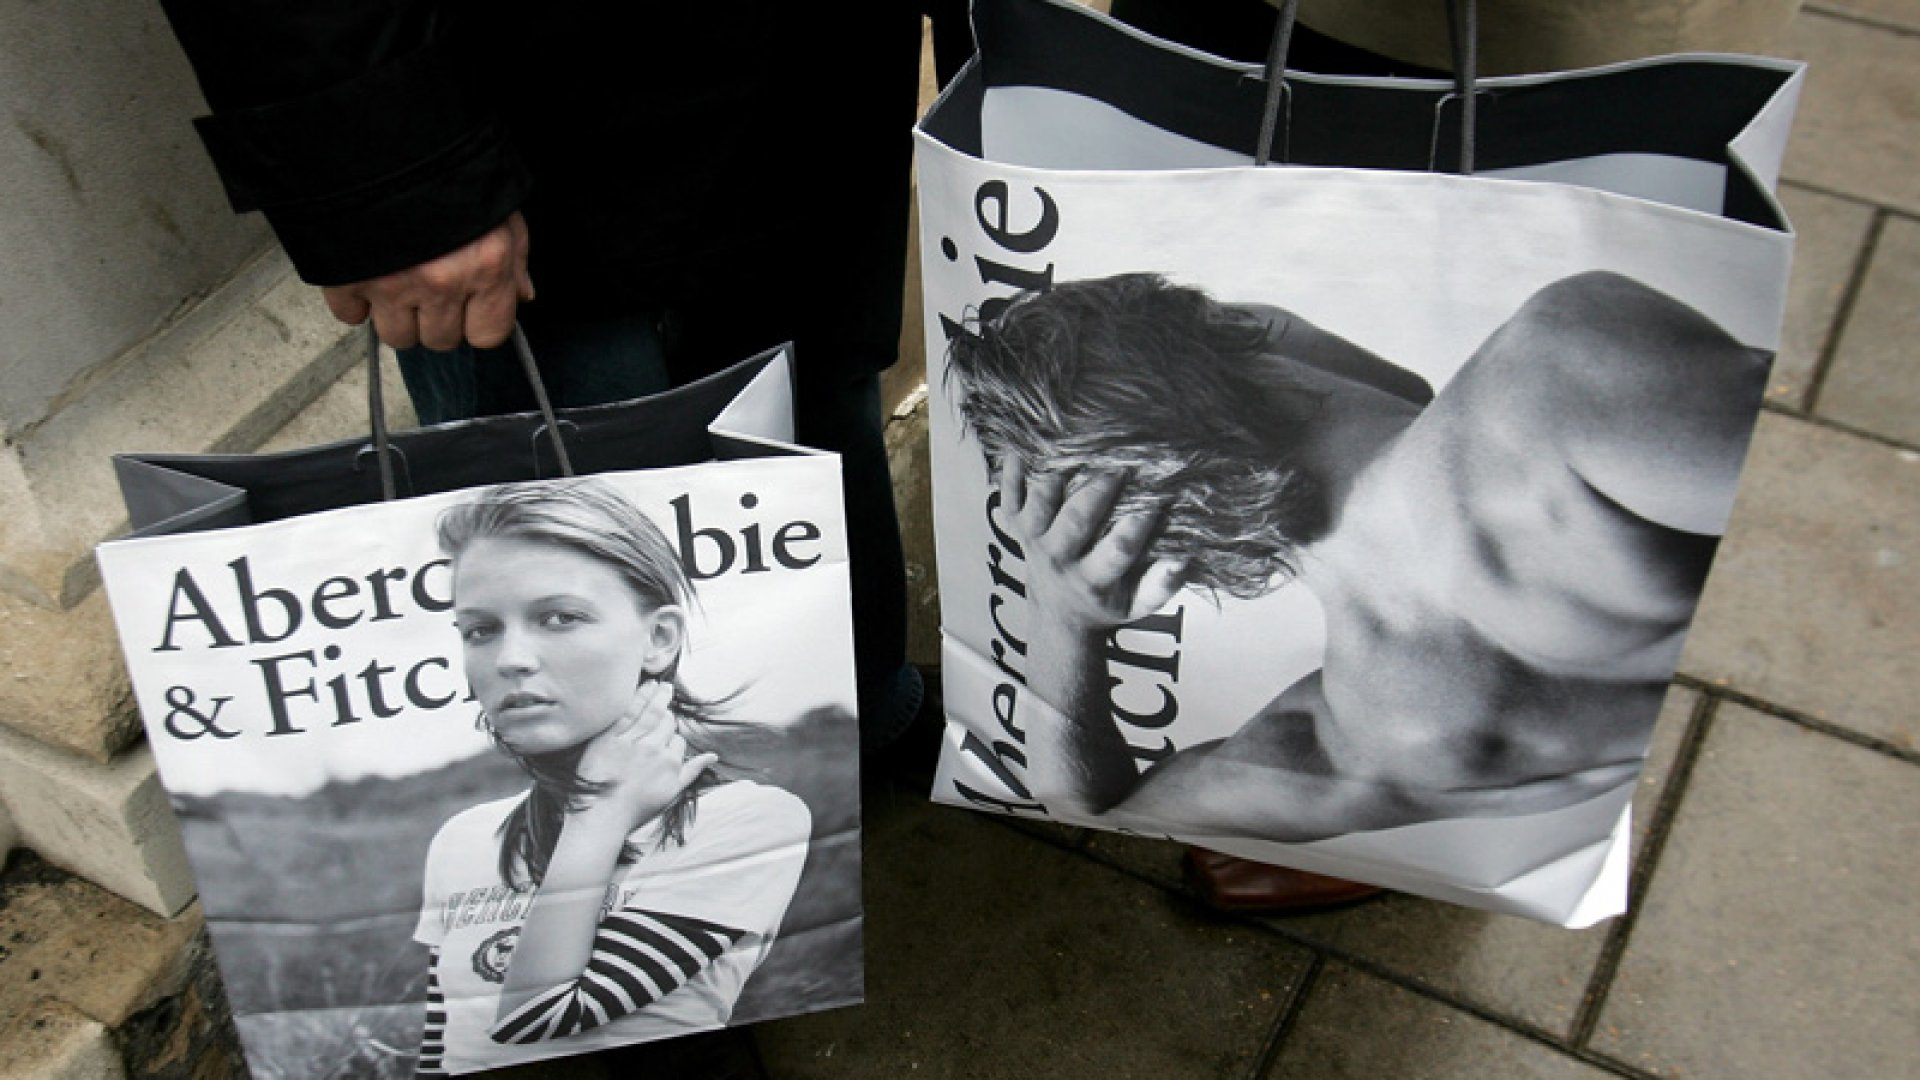 Abercrombie Name to Shrink from Clothing